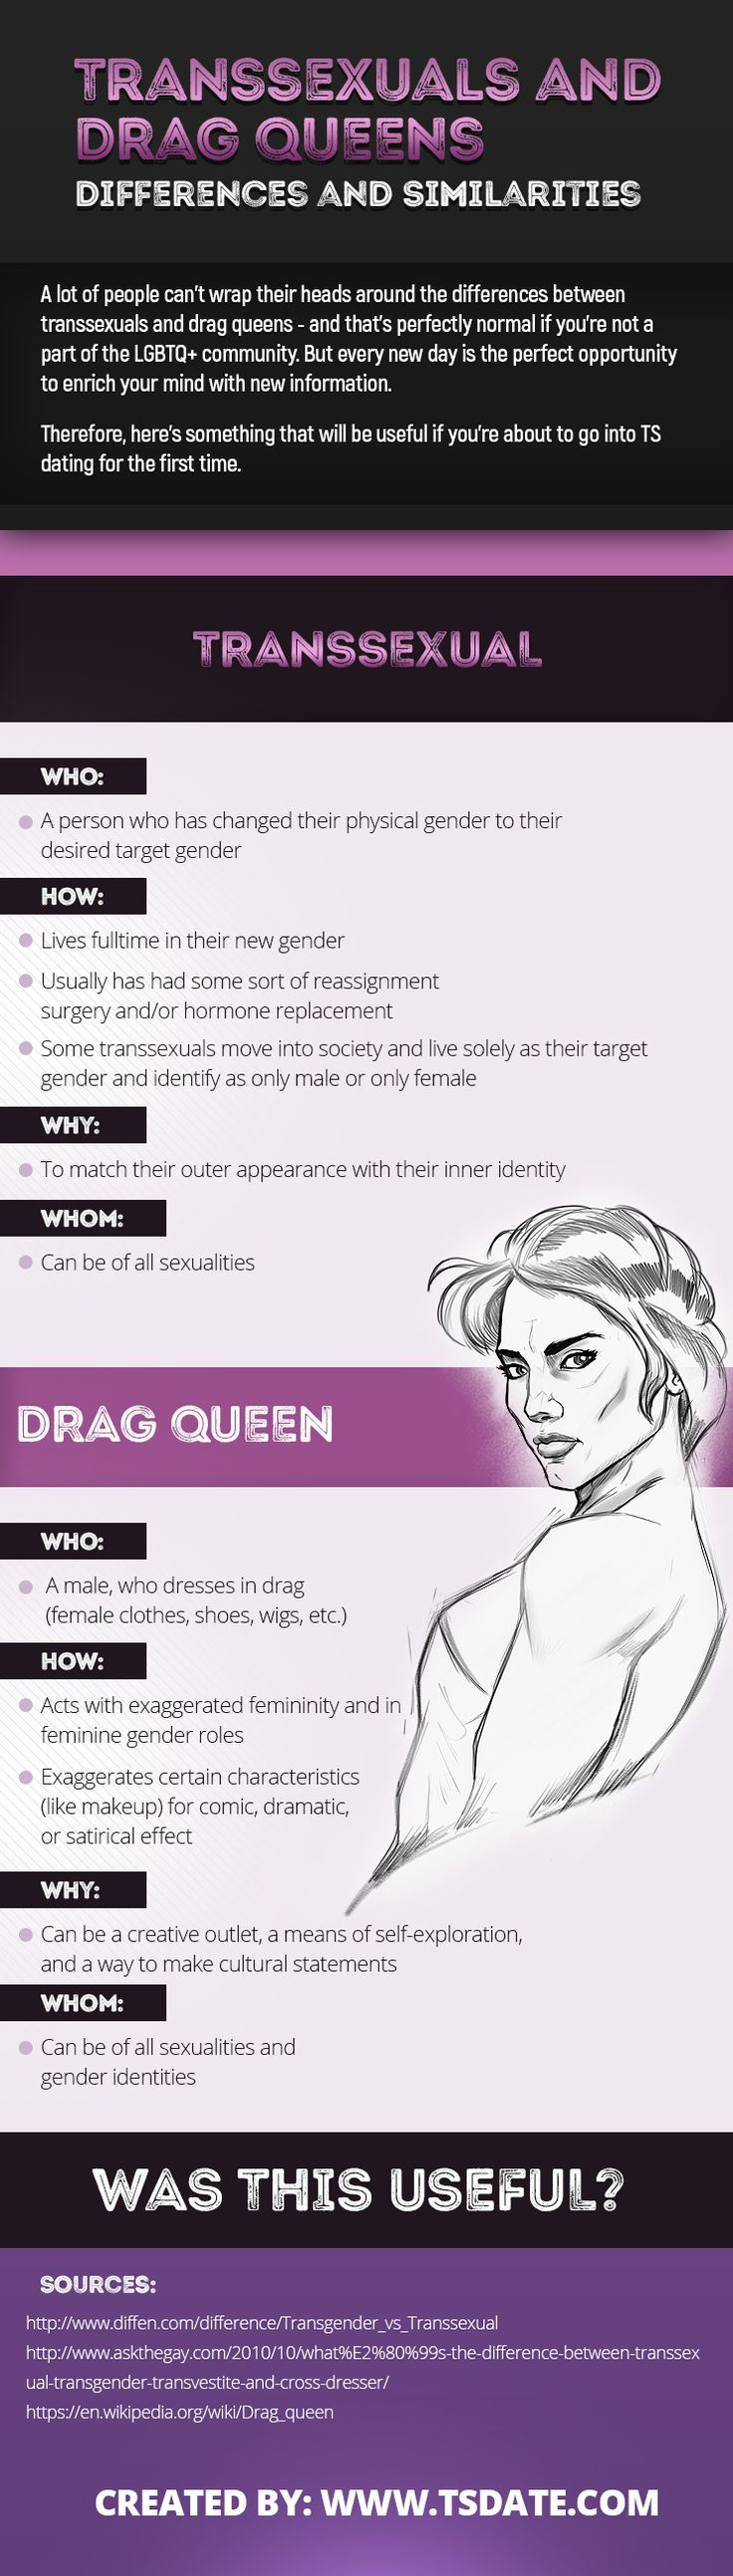 A lot of people can't wrap their heads around the differences between transsexuals and drag queens - and that's perfectly normal if you're not a part of the LGBTQ+ community. But every new day is the perfect opportunity to enrich your mind with new information. Therefore, here's something that will be useful if you're about to go into TS dating for the first time.